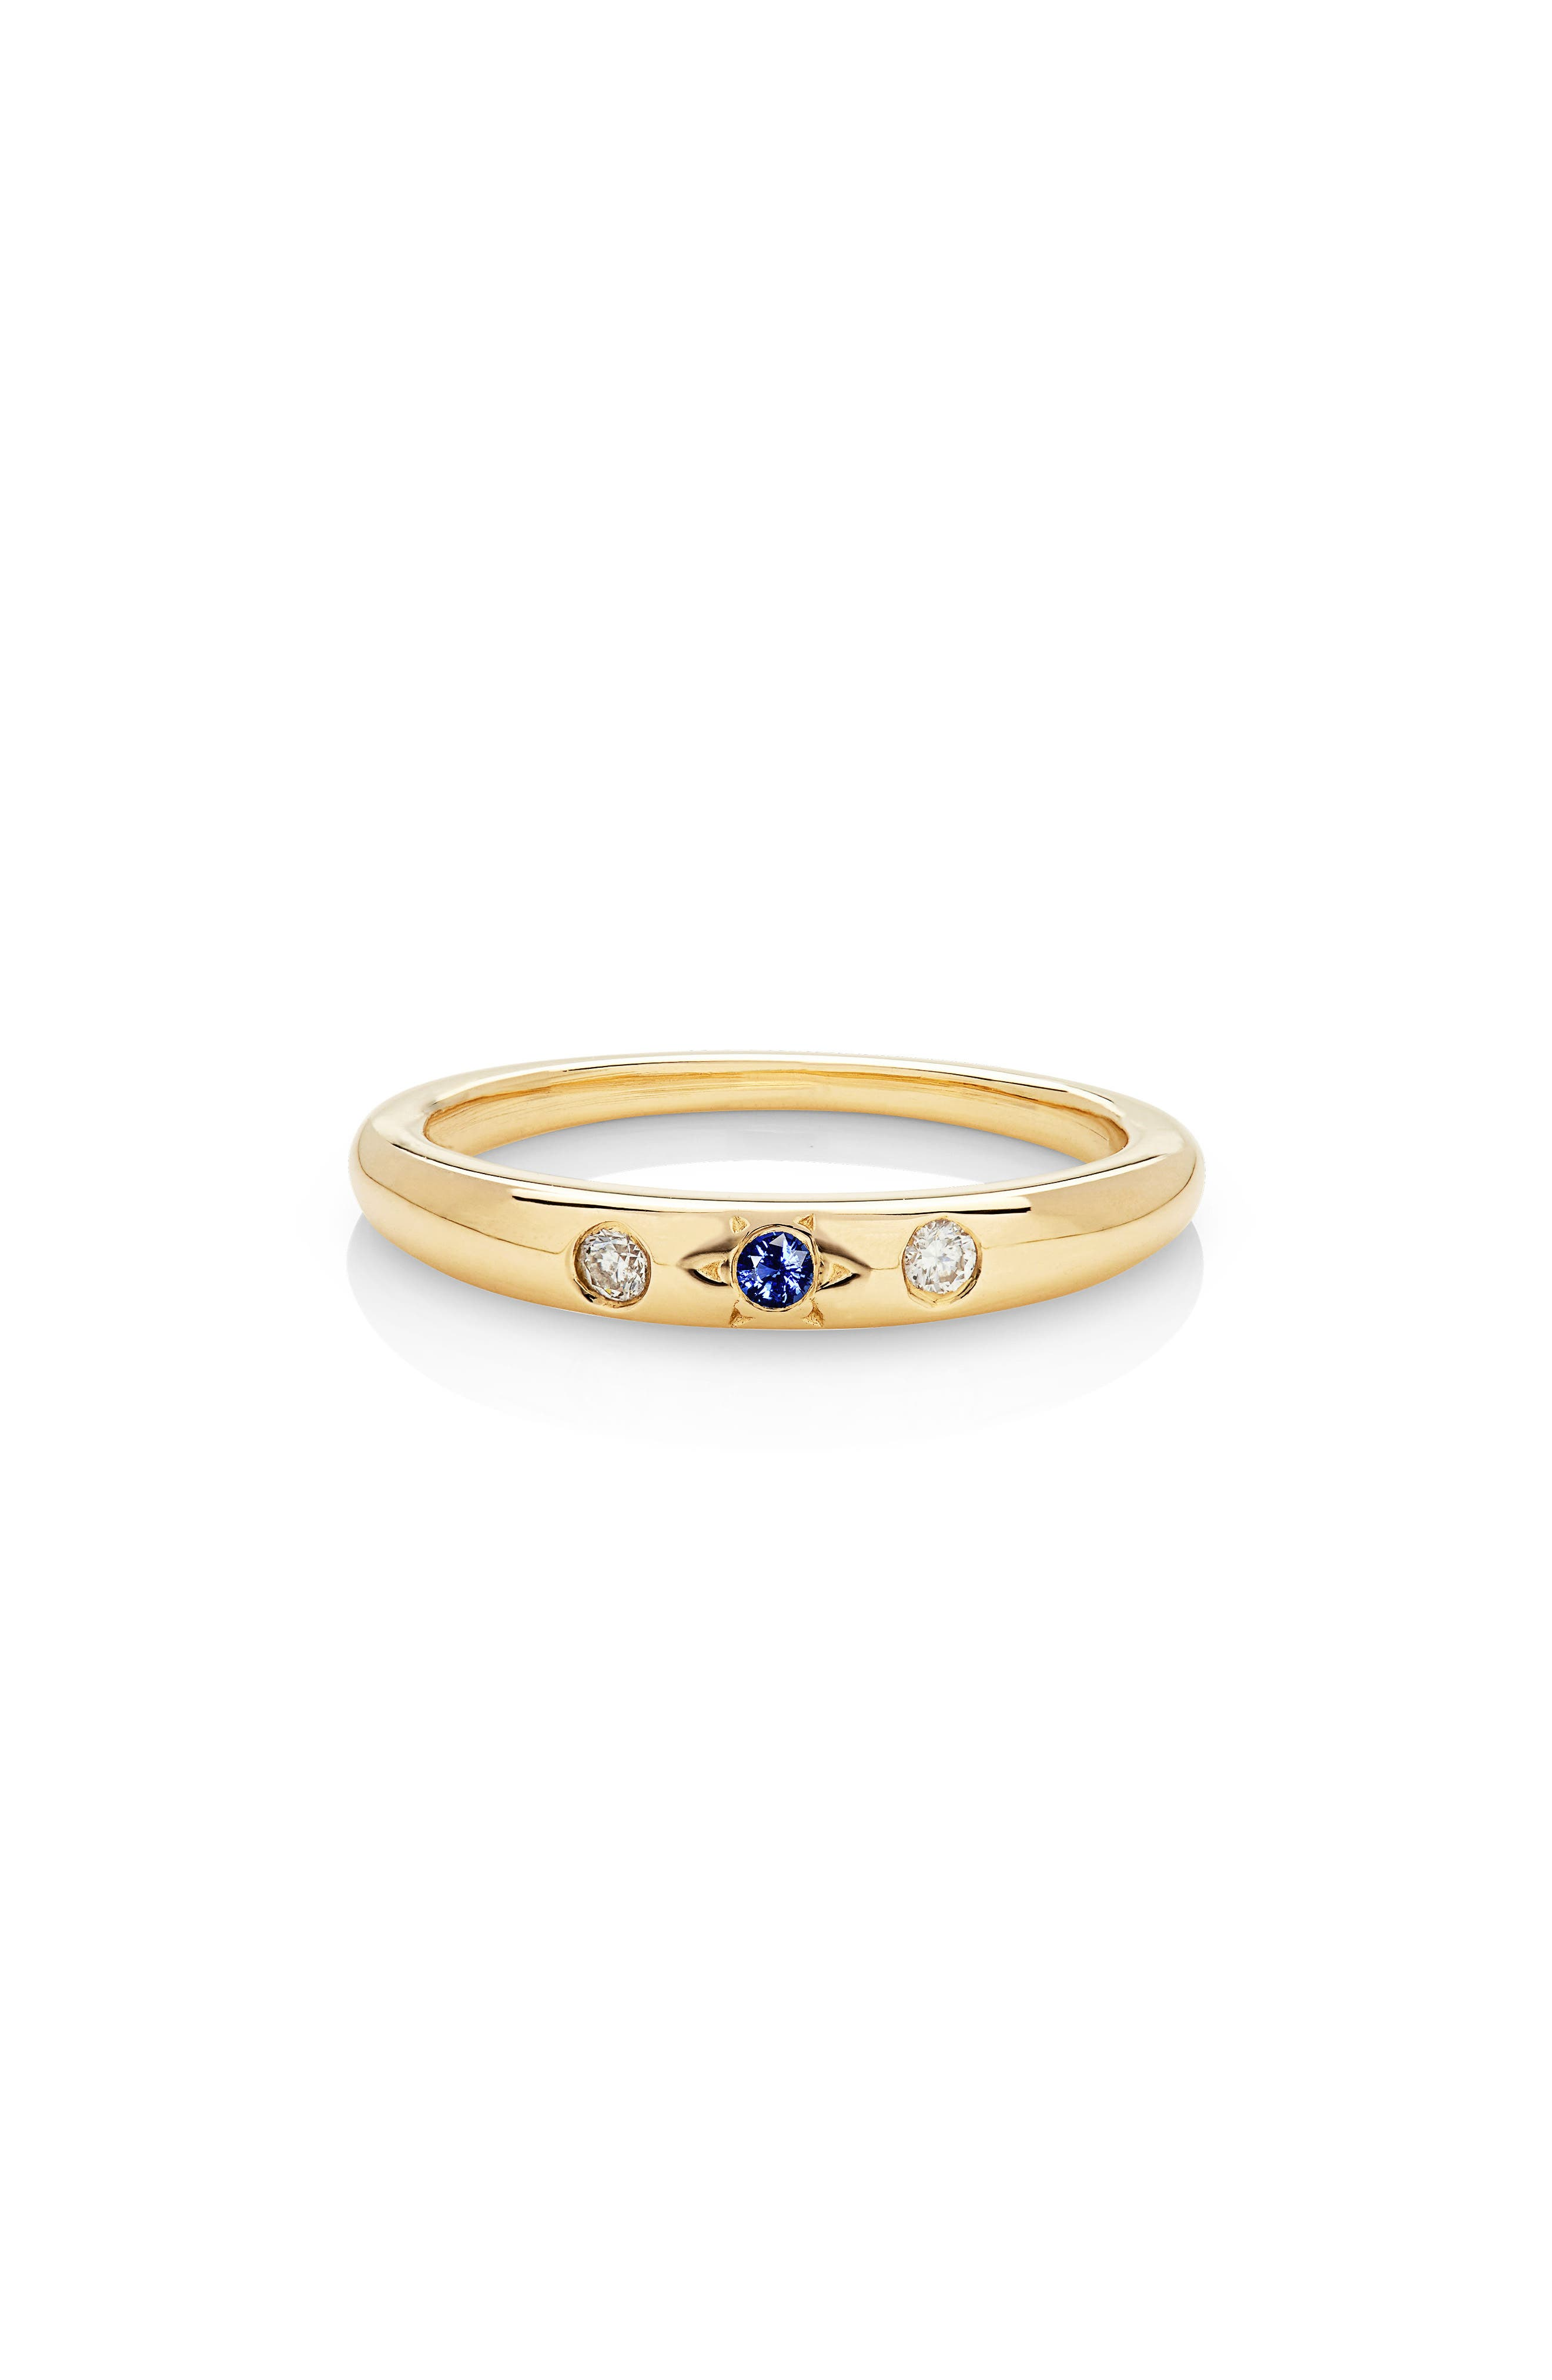 Mystic Diamond Band,                             Main thumbnail 1, color,                             YELLOW GOLD/ BLUE SAPPHIRE